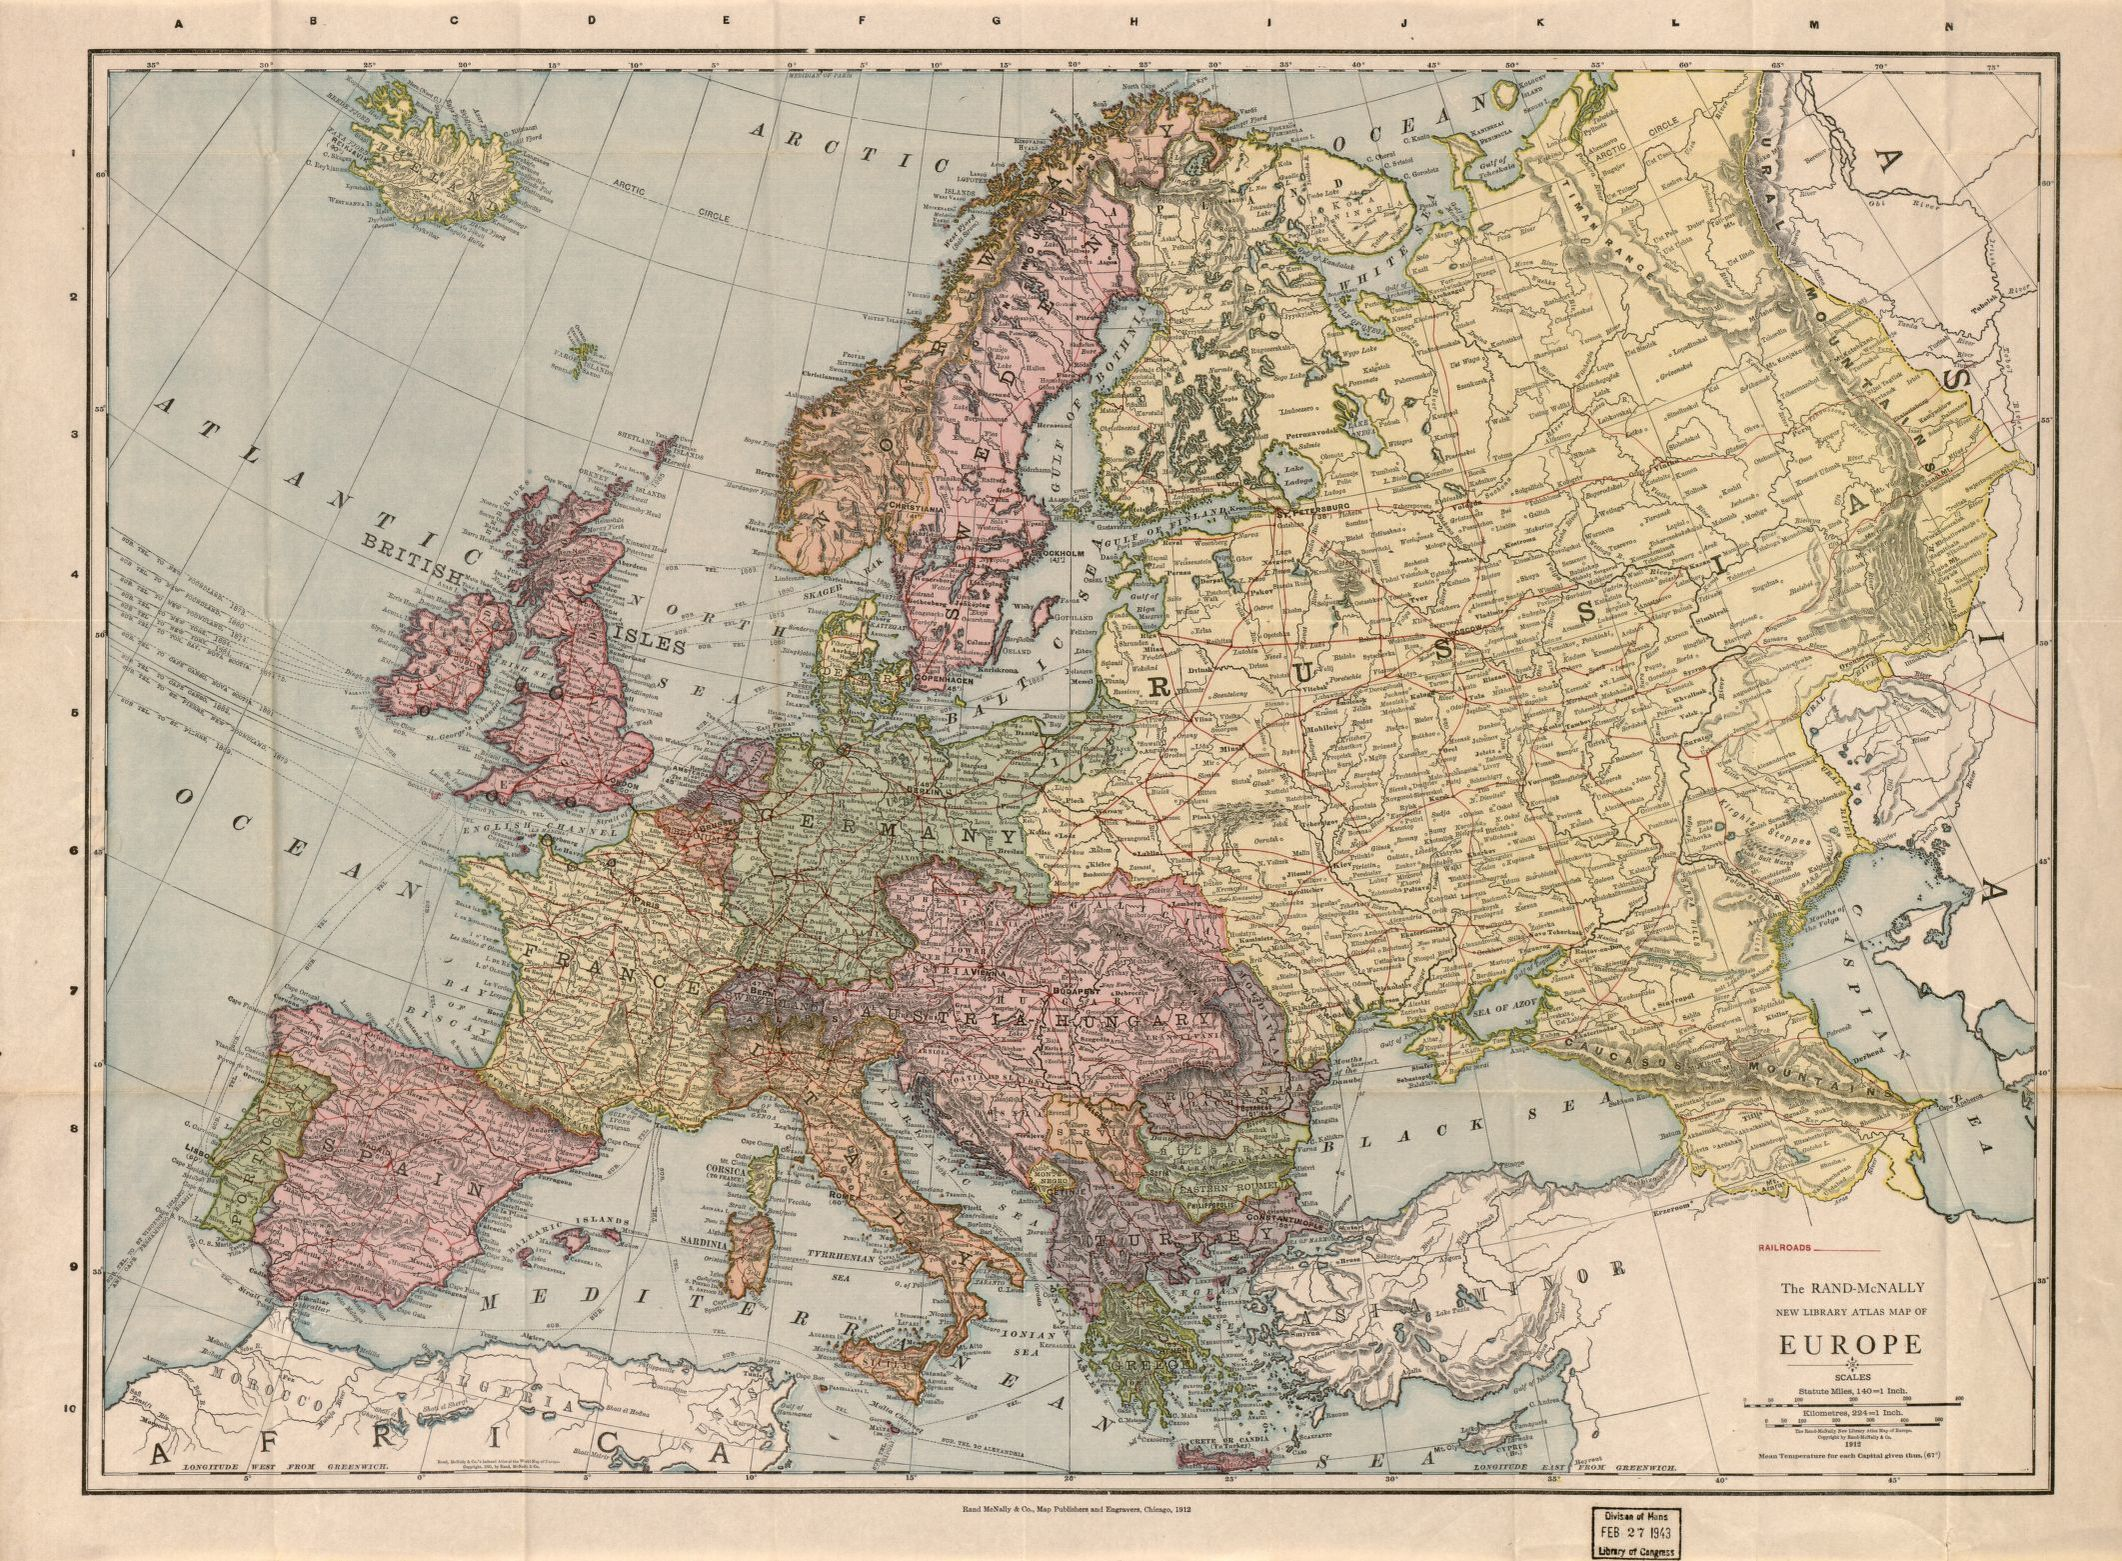 The Rand McNally new library atlas map of Europe   Library of Congress